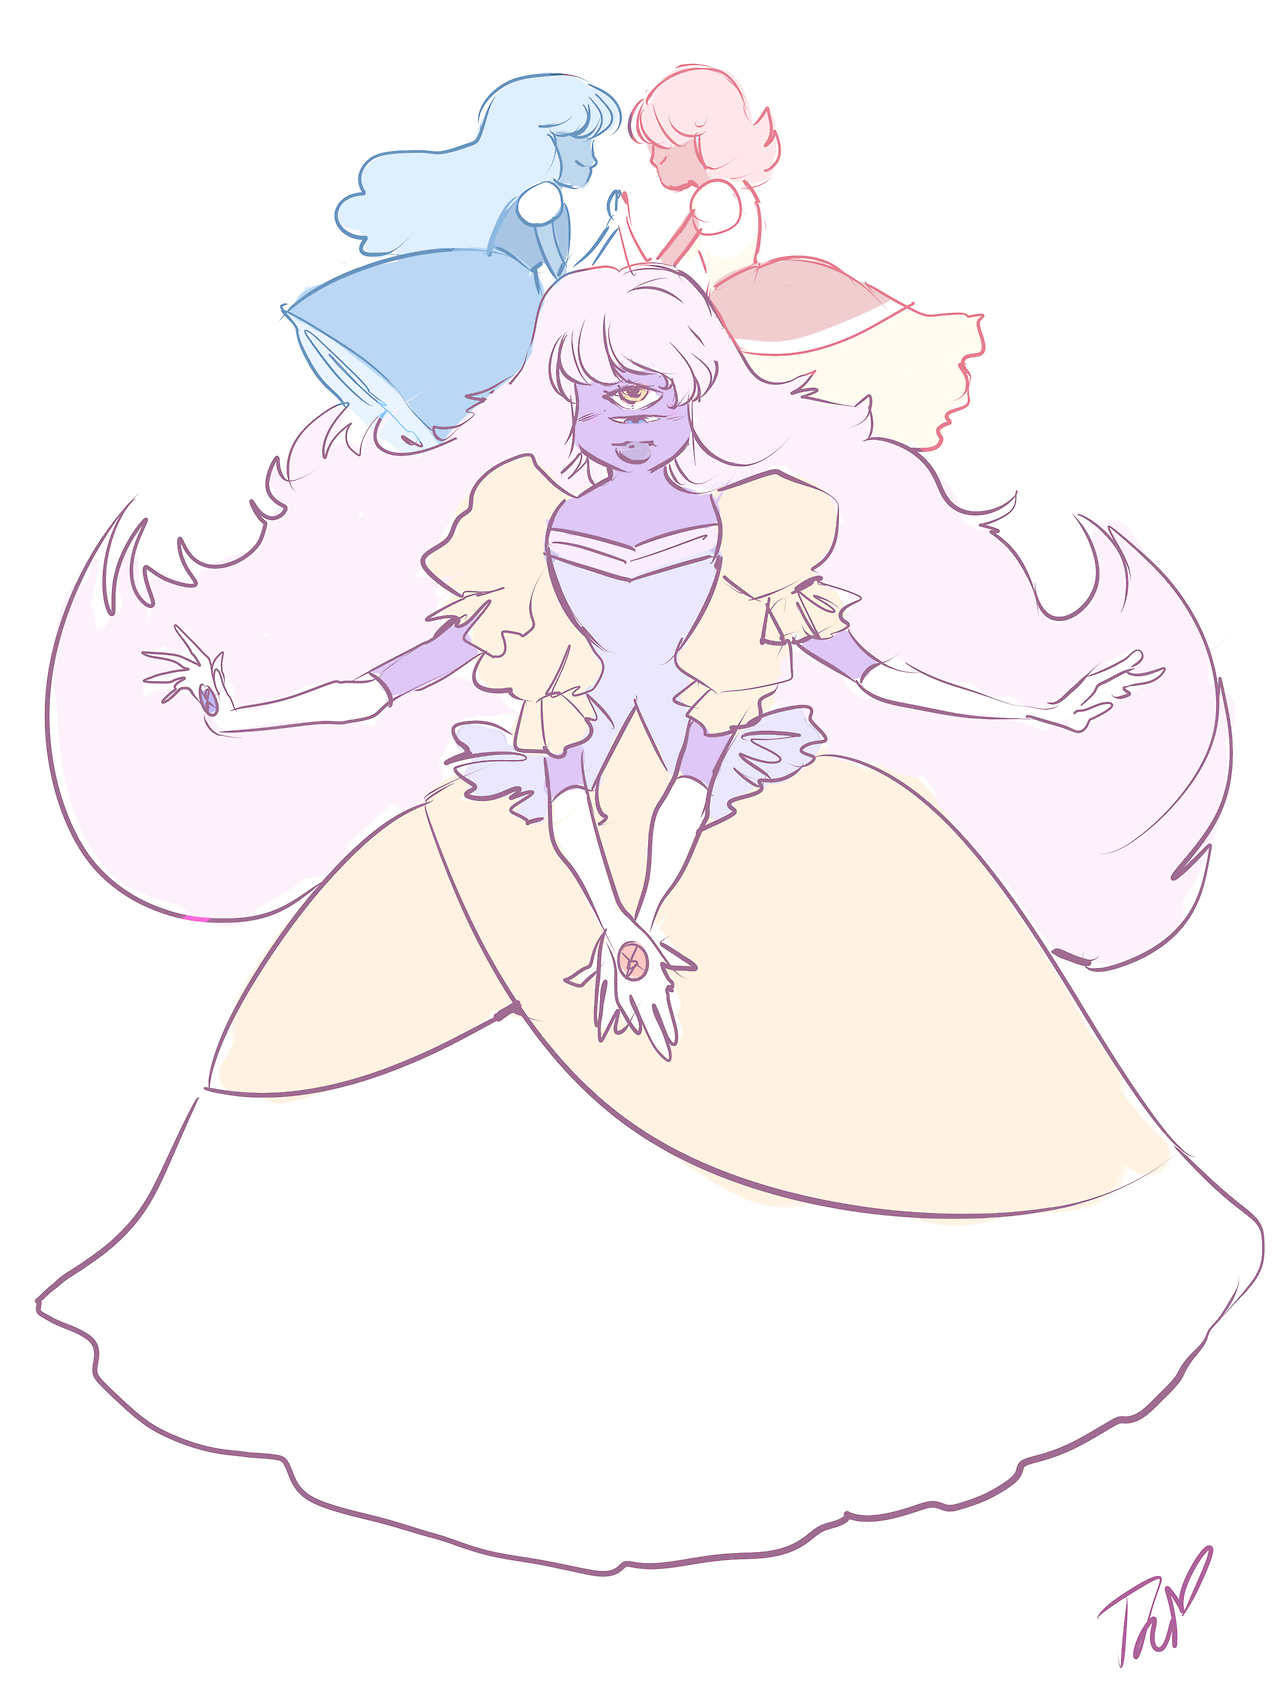 A fusion of two characters that will never fuse. Royal Sapphire has the ability to see the present through everyone's eyes around her. She's super easily distracted by this, so she's really clumsy and...